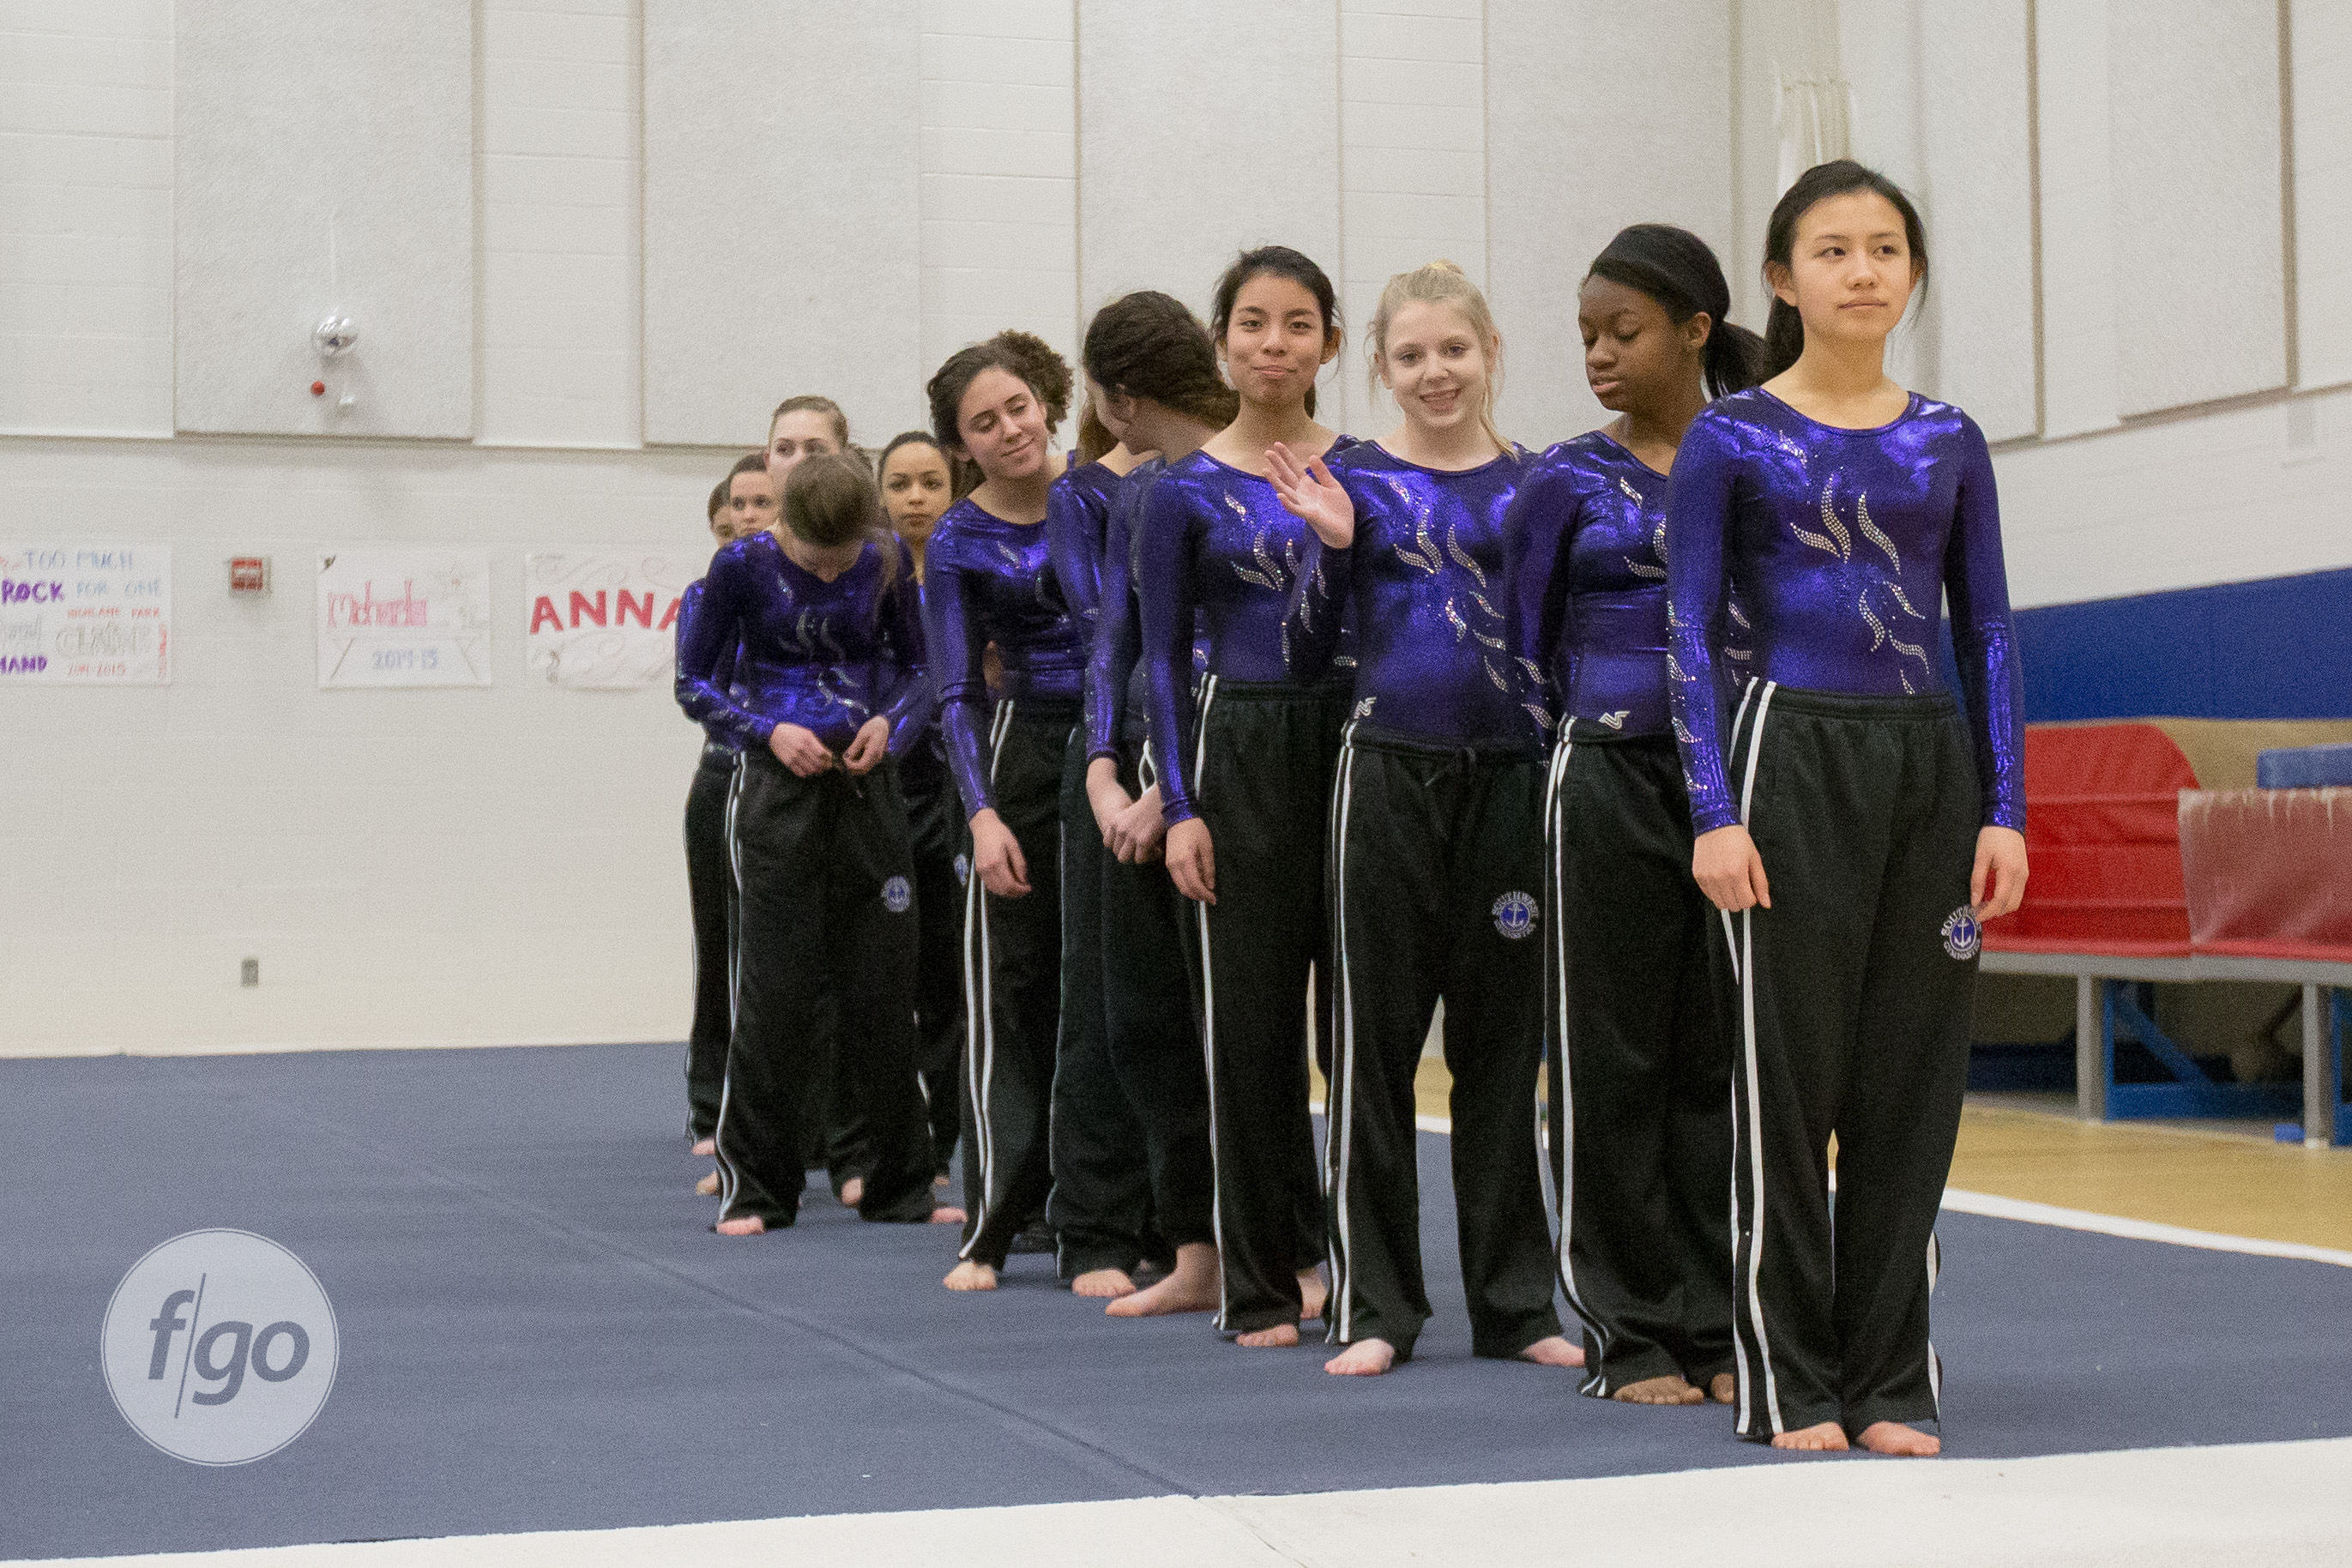 20150120-002-Henry-North-Southwest-gymnastics